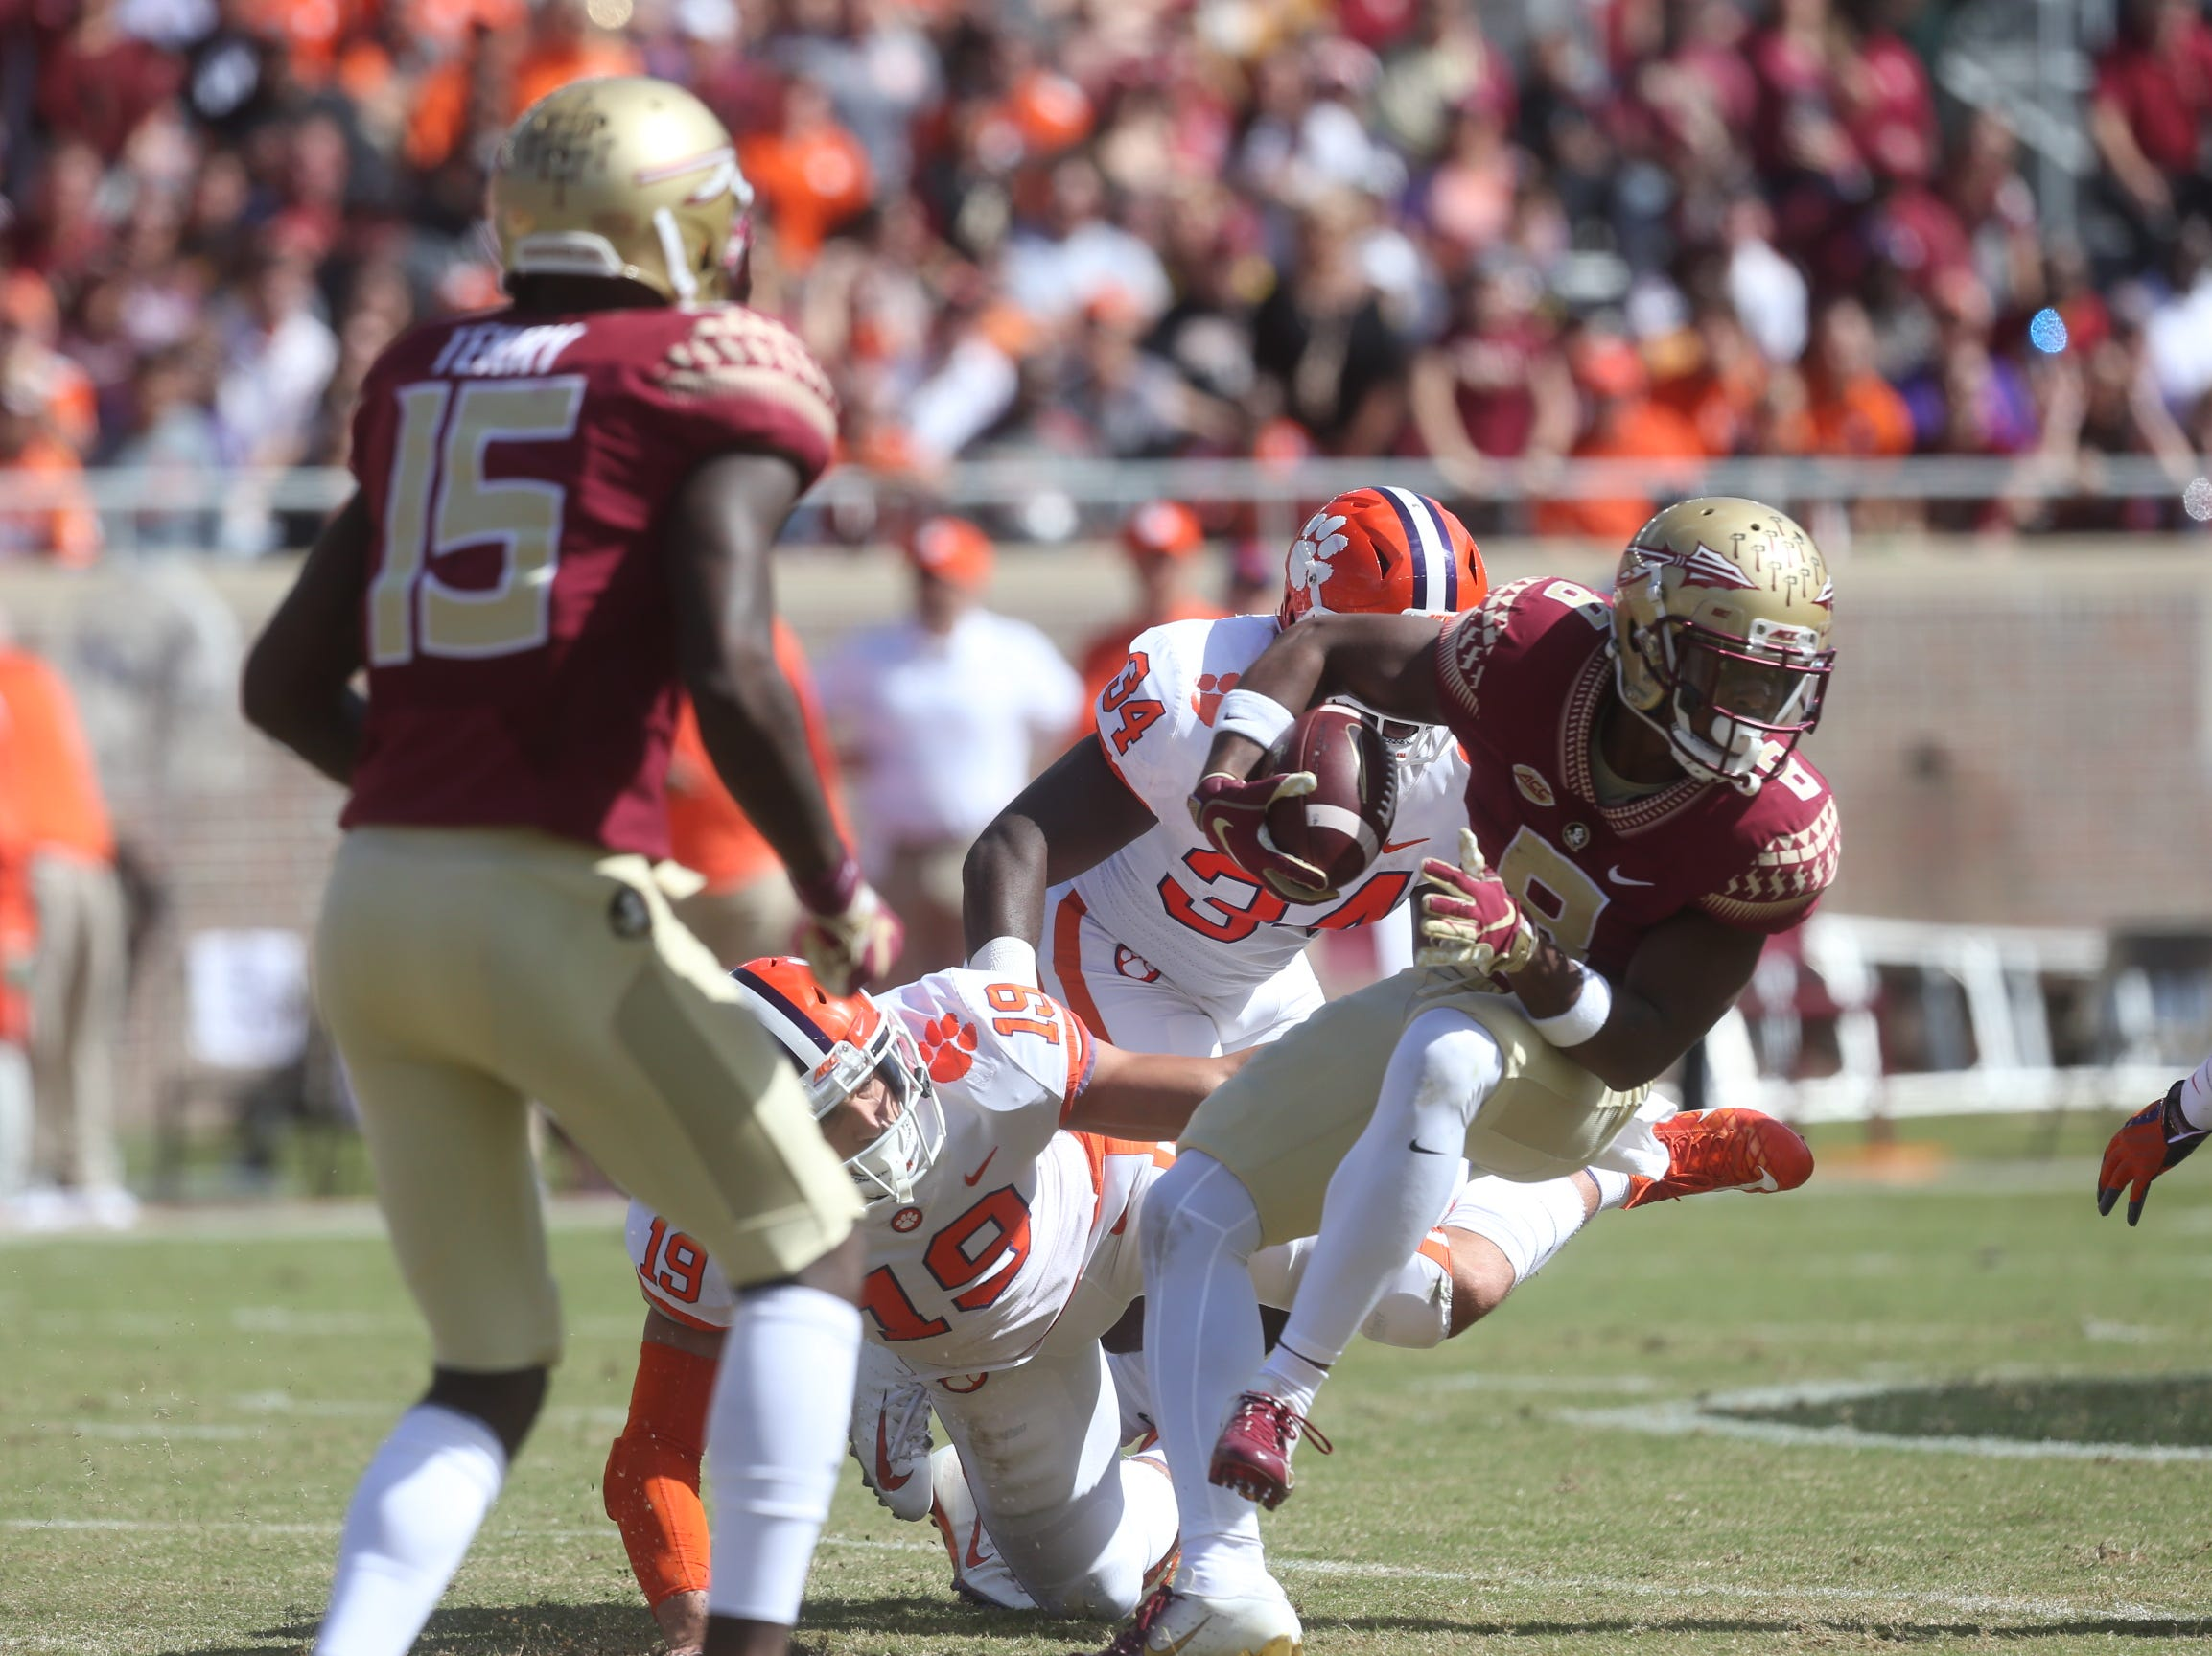 Florida State Seminoles running back Jacques Patrick (9) fights off a tackle from Clemson Tigers safety Tanner Muse (19) as the Florida State Seminoles take on the Clemson Tigers in college football at Doak Stadium on Saturday, Oct. 27, 2018.